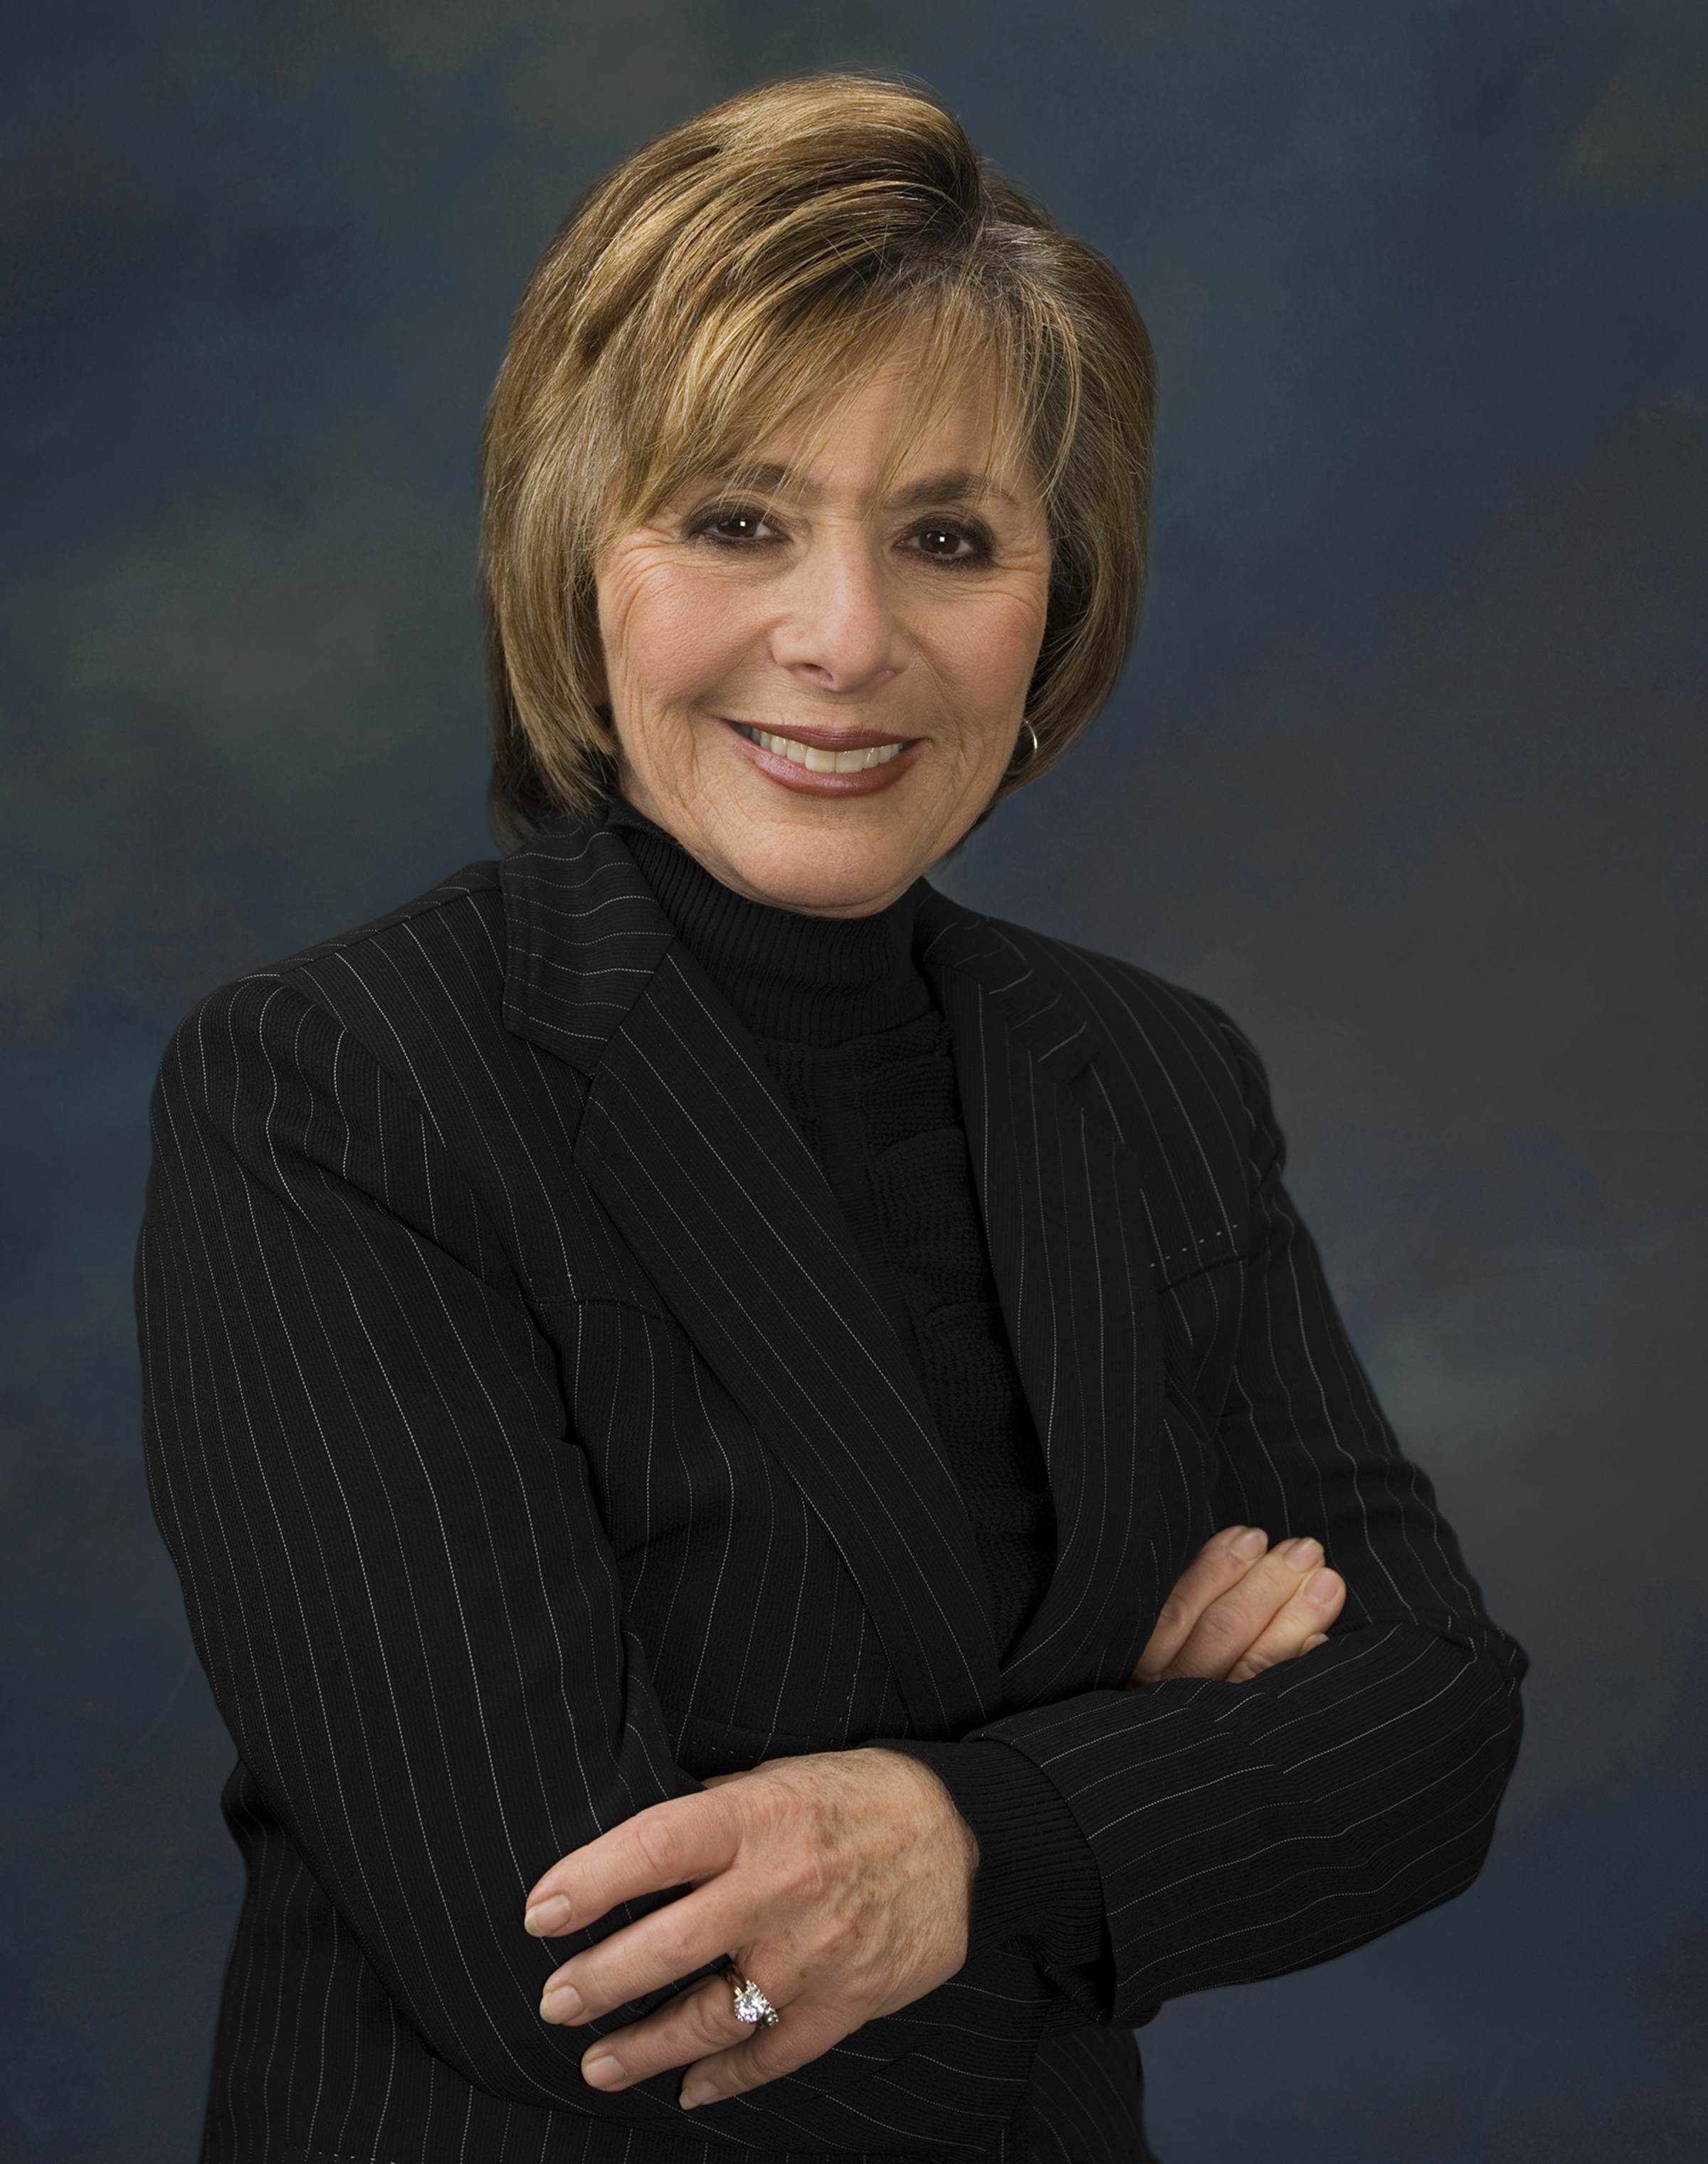 Senator Barbara Boxer: The Art of Tough: Fearlessly Facing Politics and Life